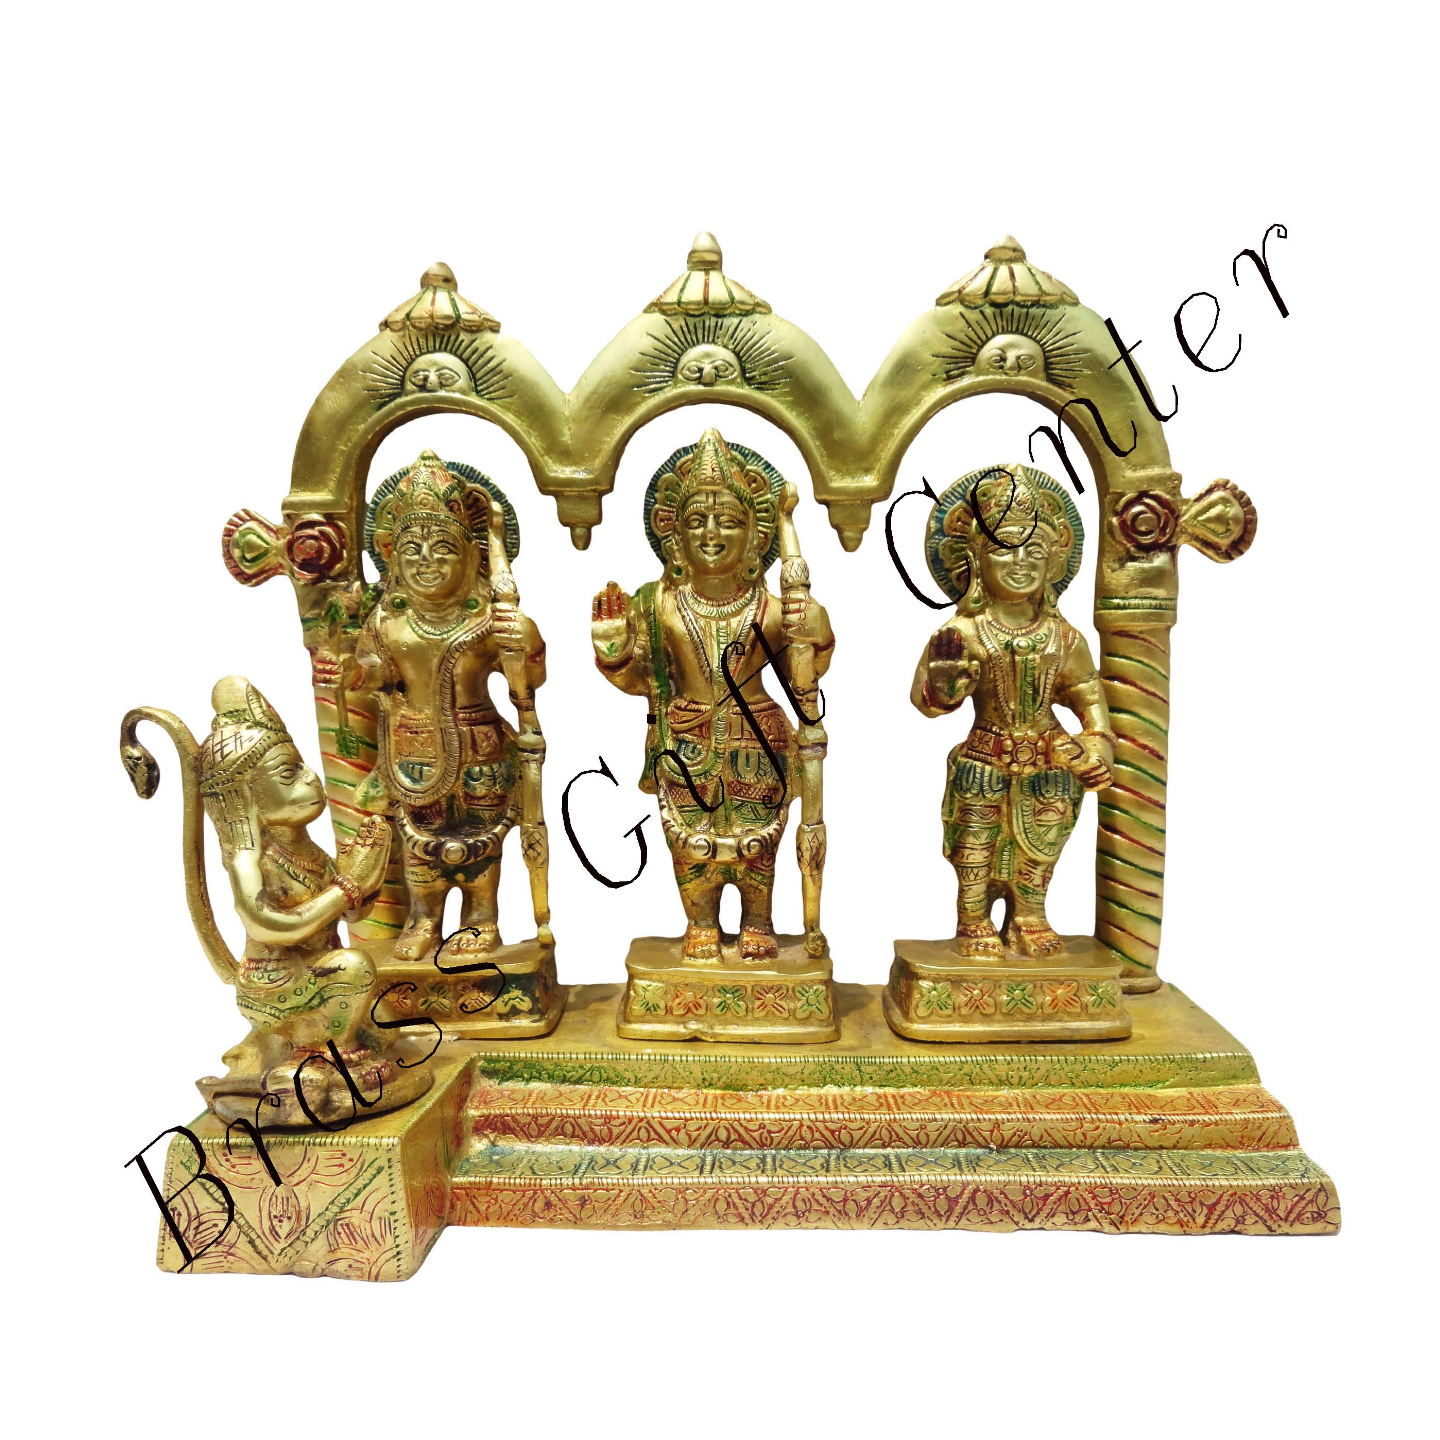 Brass Ram Dharbar Statue Idol Murti in Multicolour lacquer finish- 10*4.8*10 Inch  (BS130)